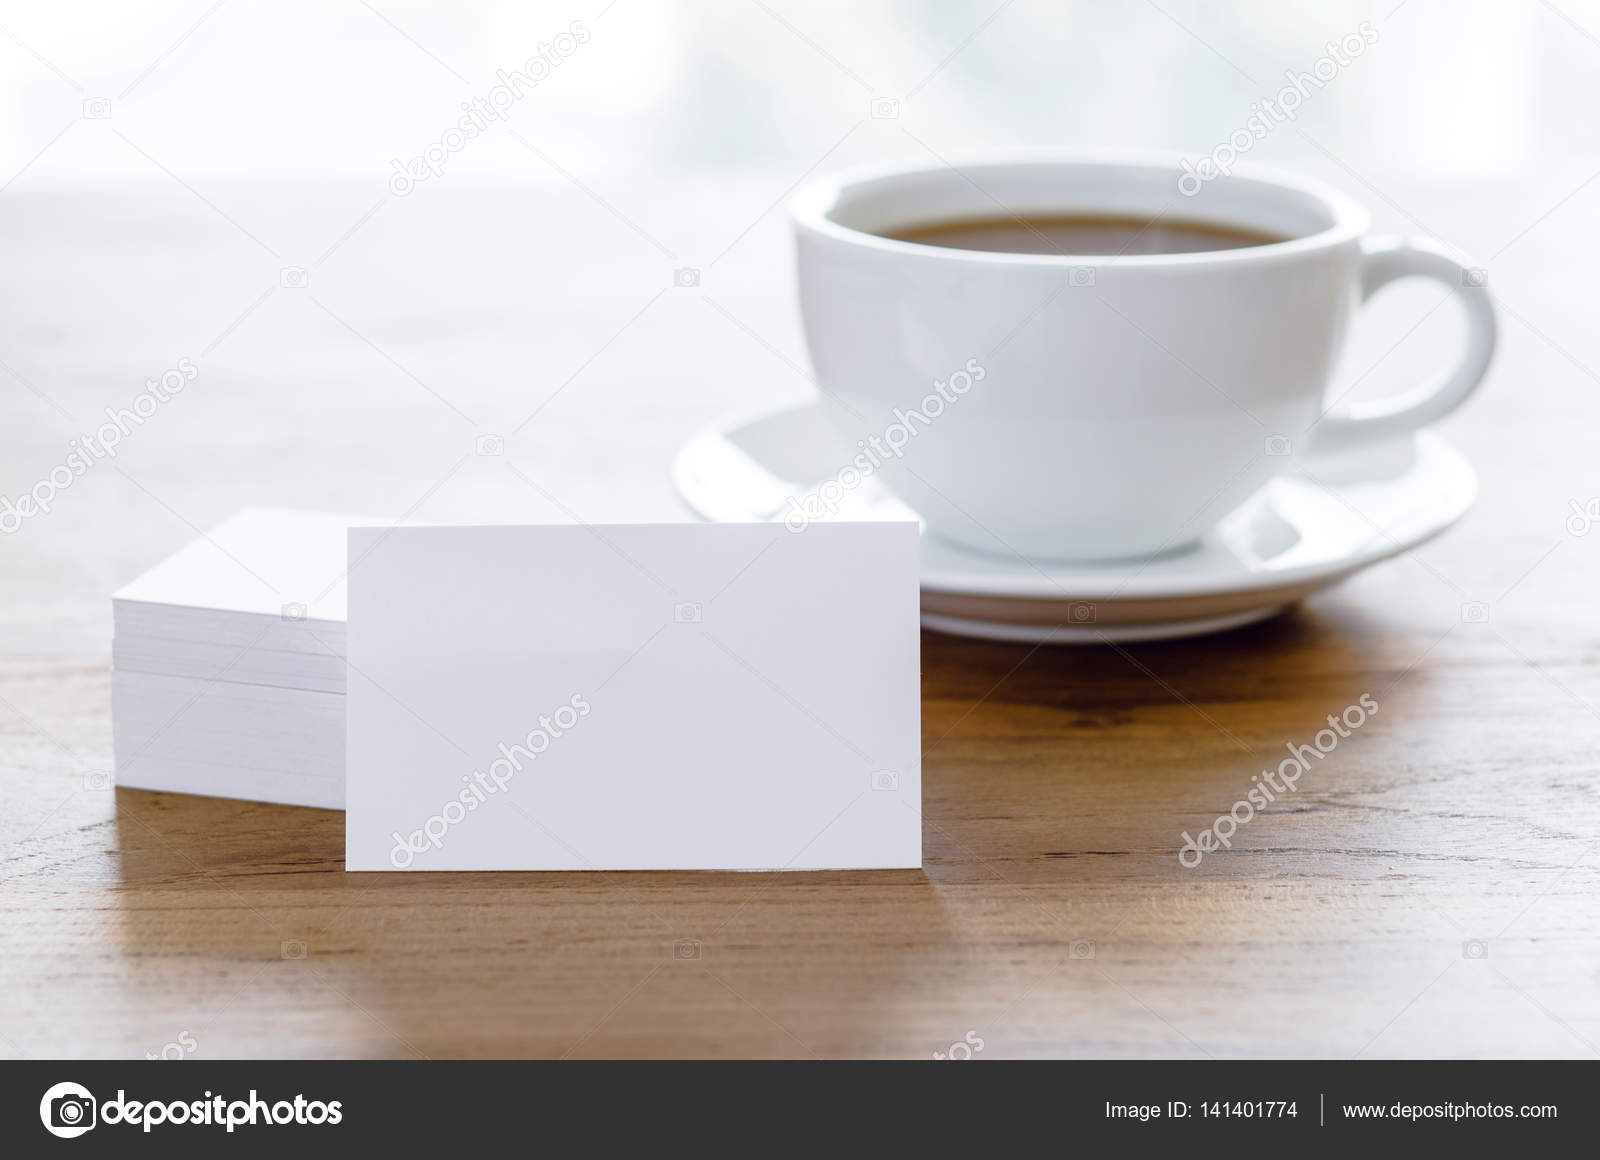 Cartes De Visite Vierges Et Tasse Caf Sur La Table En Bois Photo